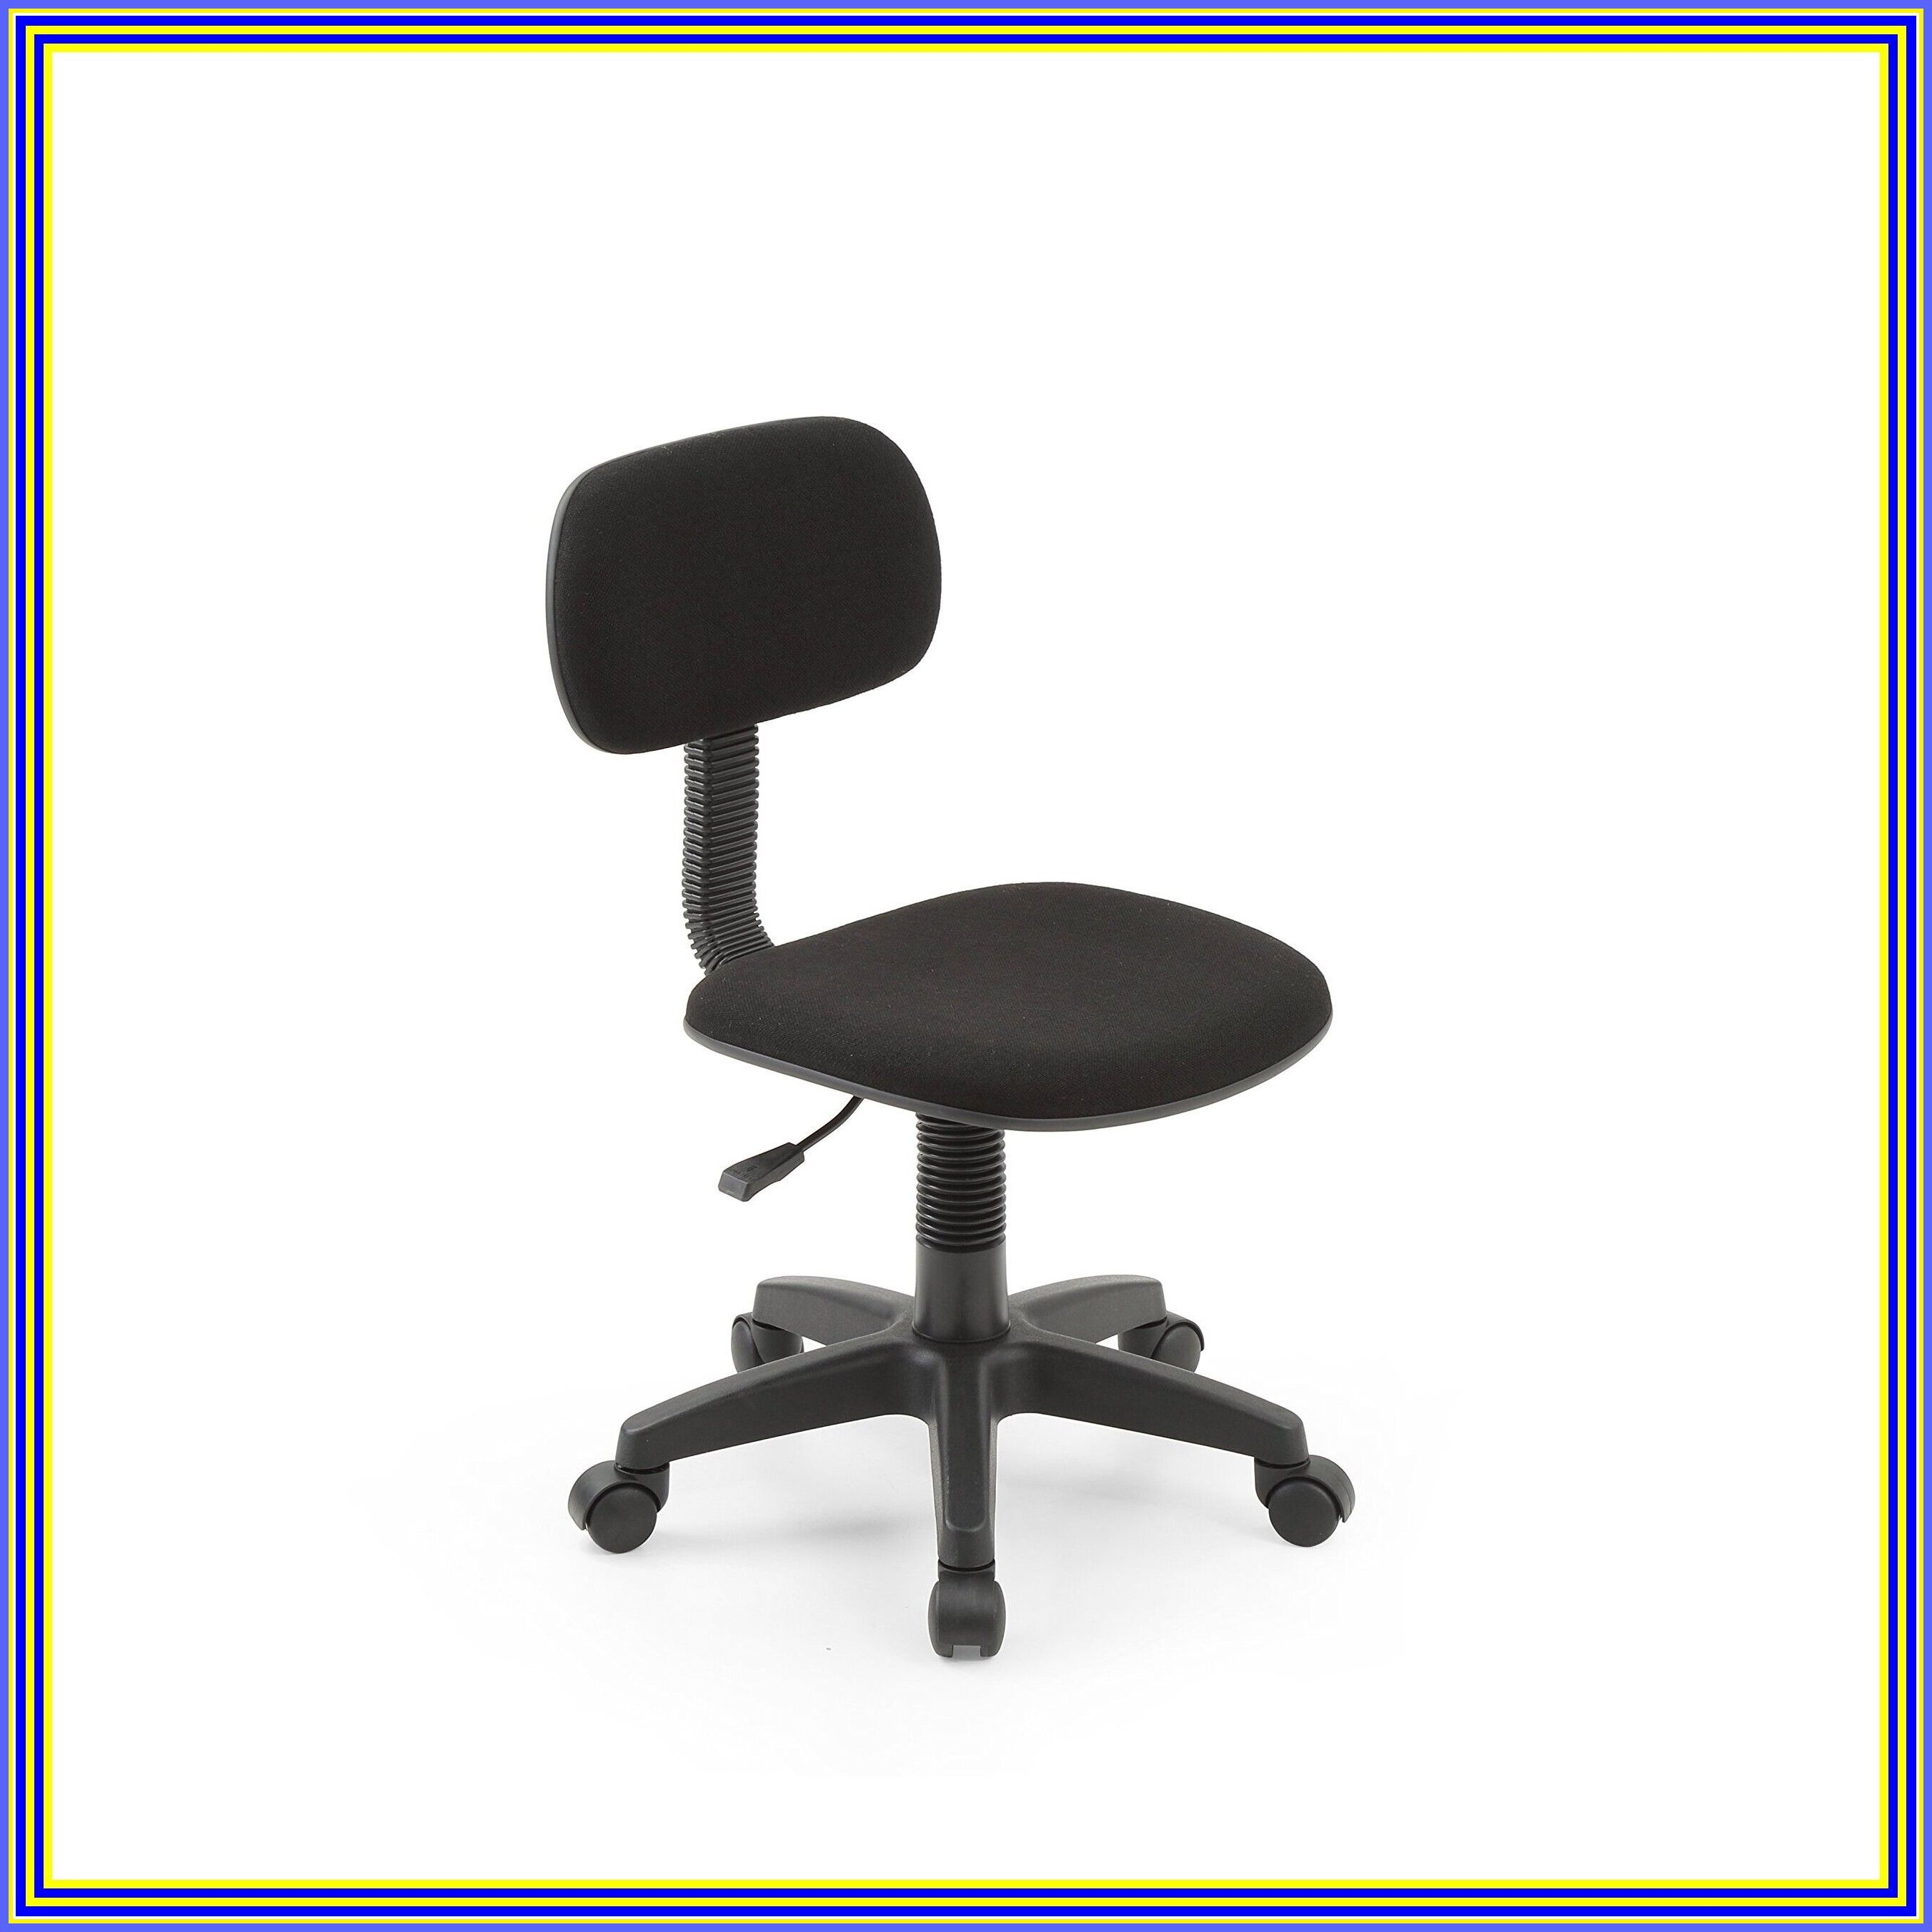 109 reference of desk chair cheap no wheels in 2020